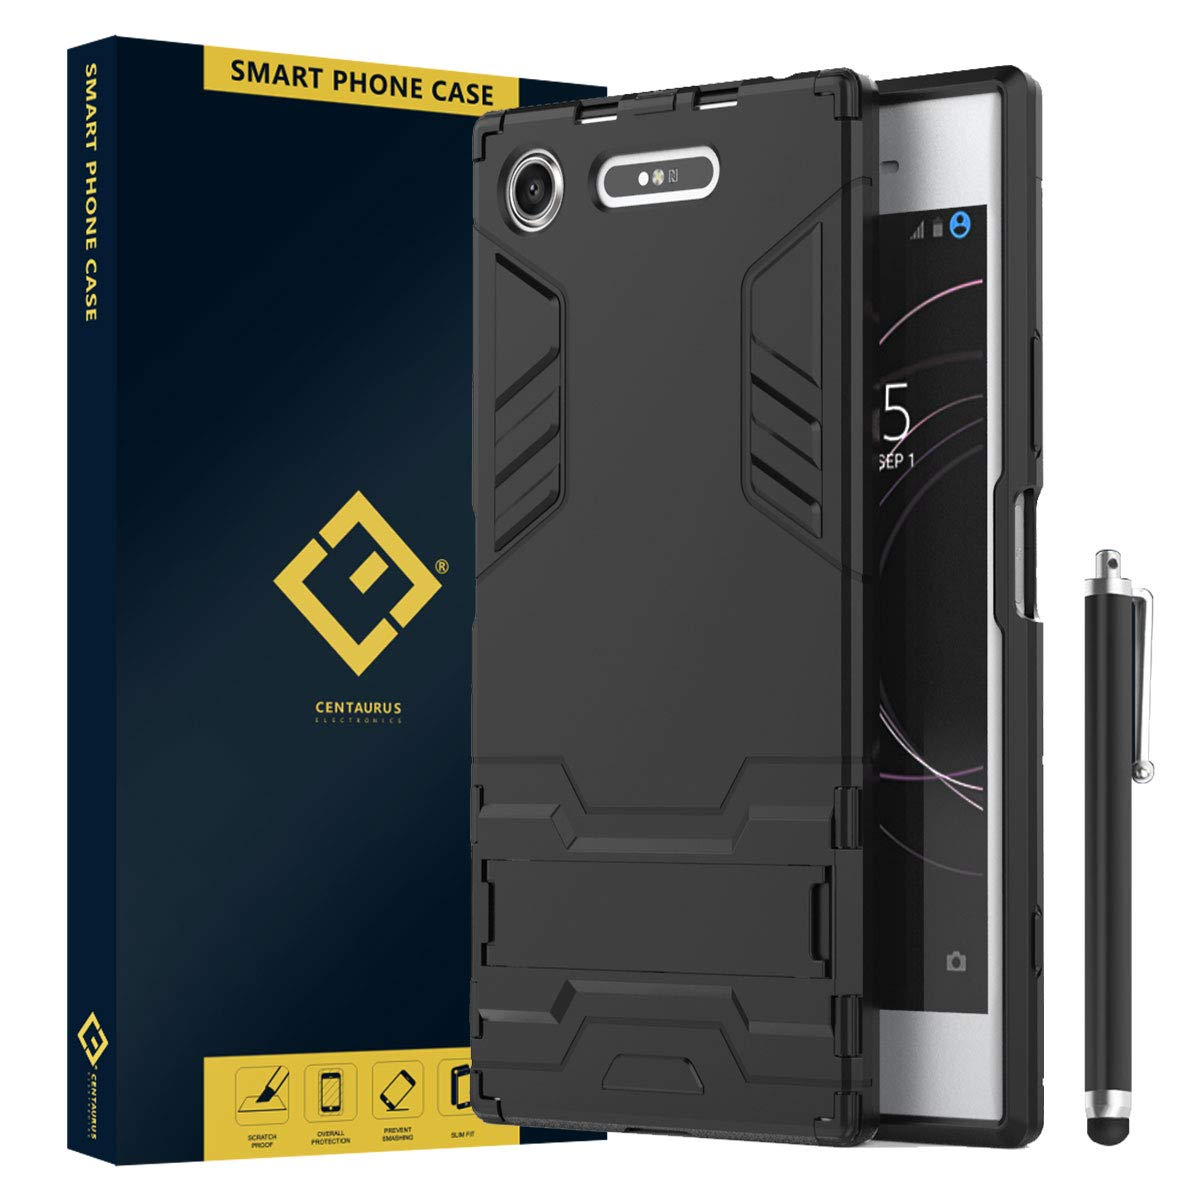 CENTAURUS Replacement for Sony Xperia XZ1 Case, Built-in Kickstand Shock Absorbing Detachable 2in1 Hybrid Heavy Duty Armor Dual Layer Rugged ...